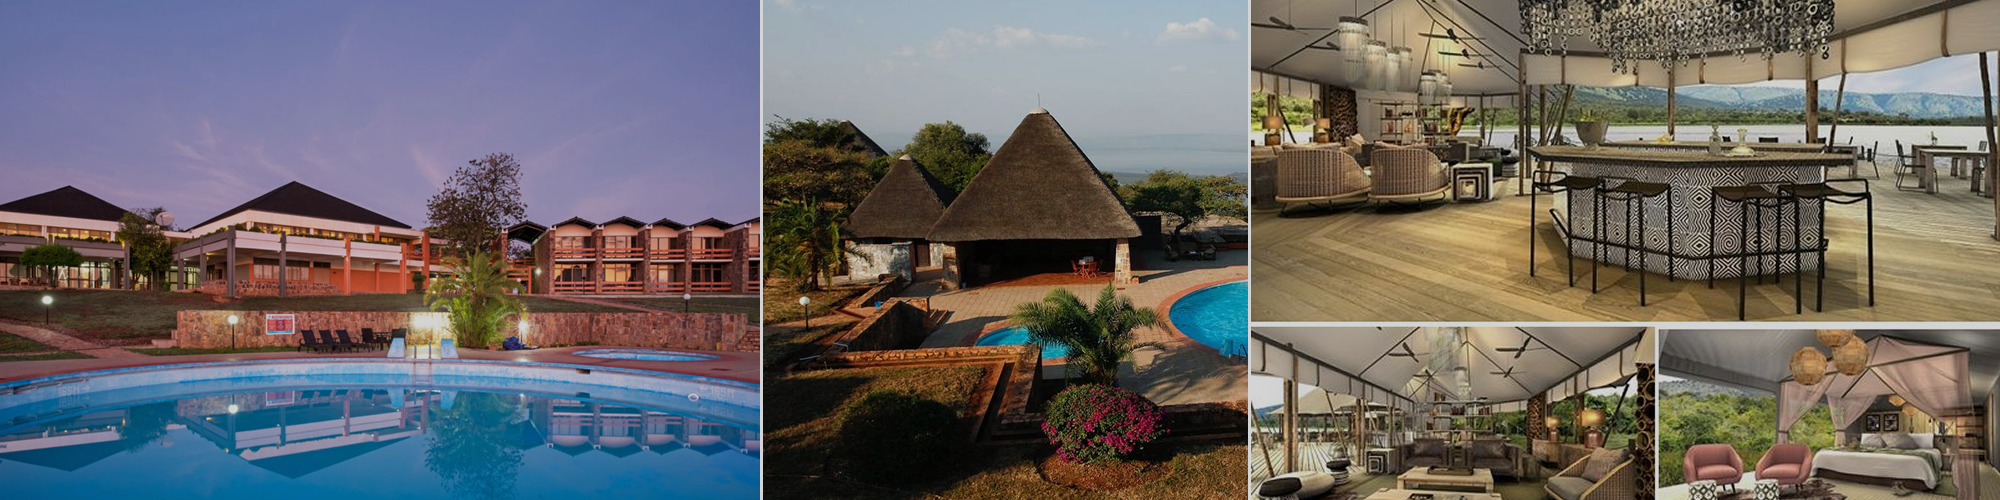 Accommodation in Nyungwe Forest National Park